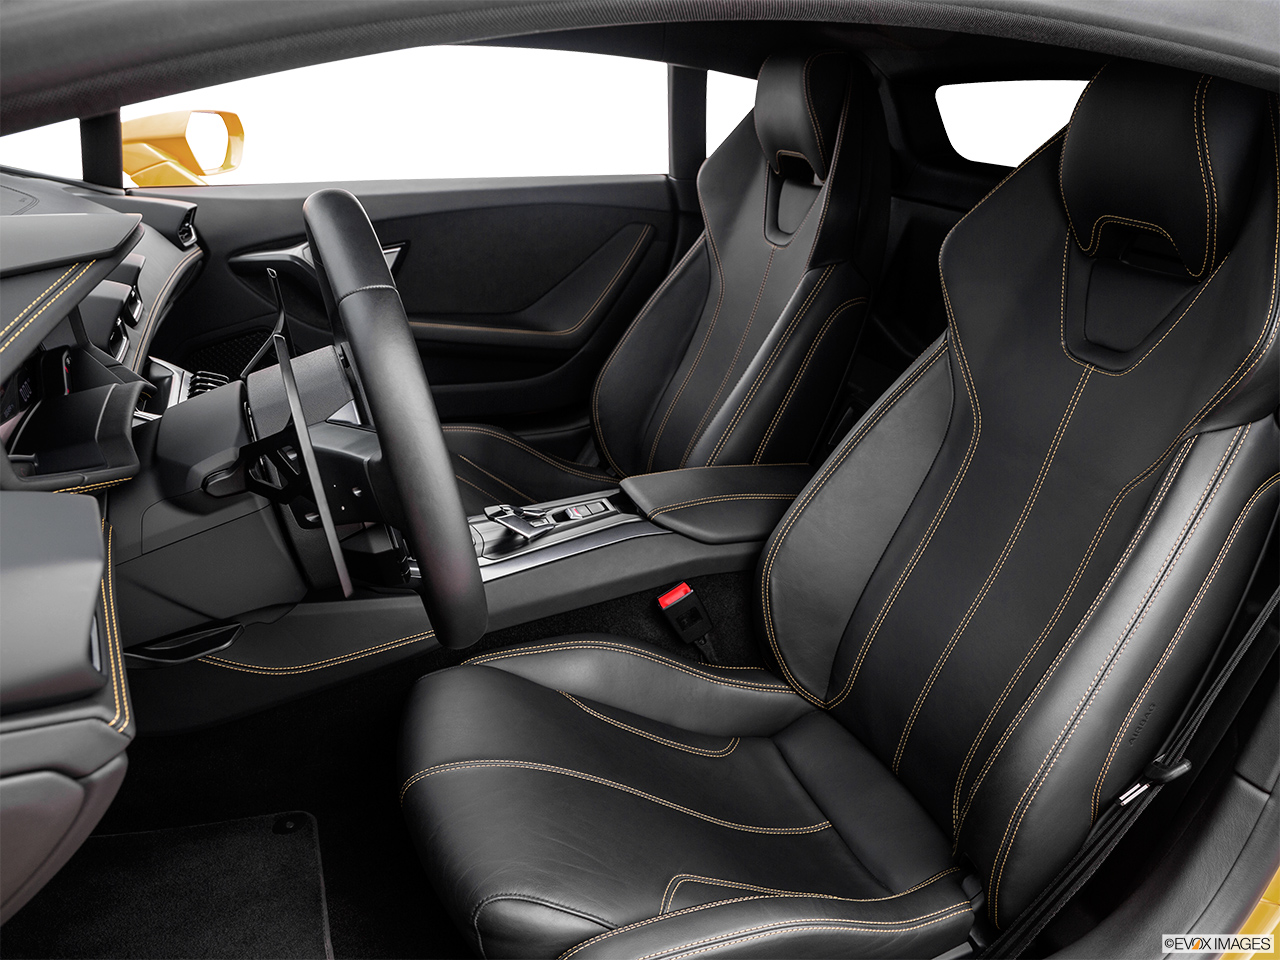 2015 Lamborghini Huracan LP 610-4 Front seats from Drivers Side.